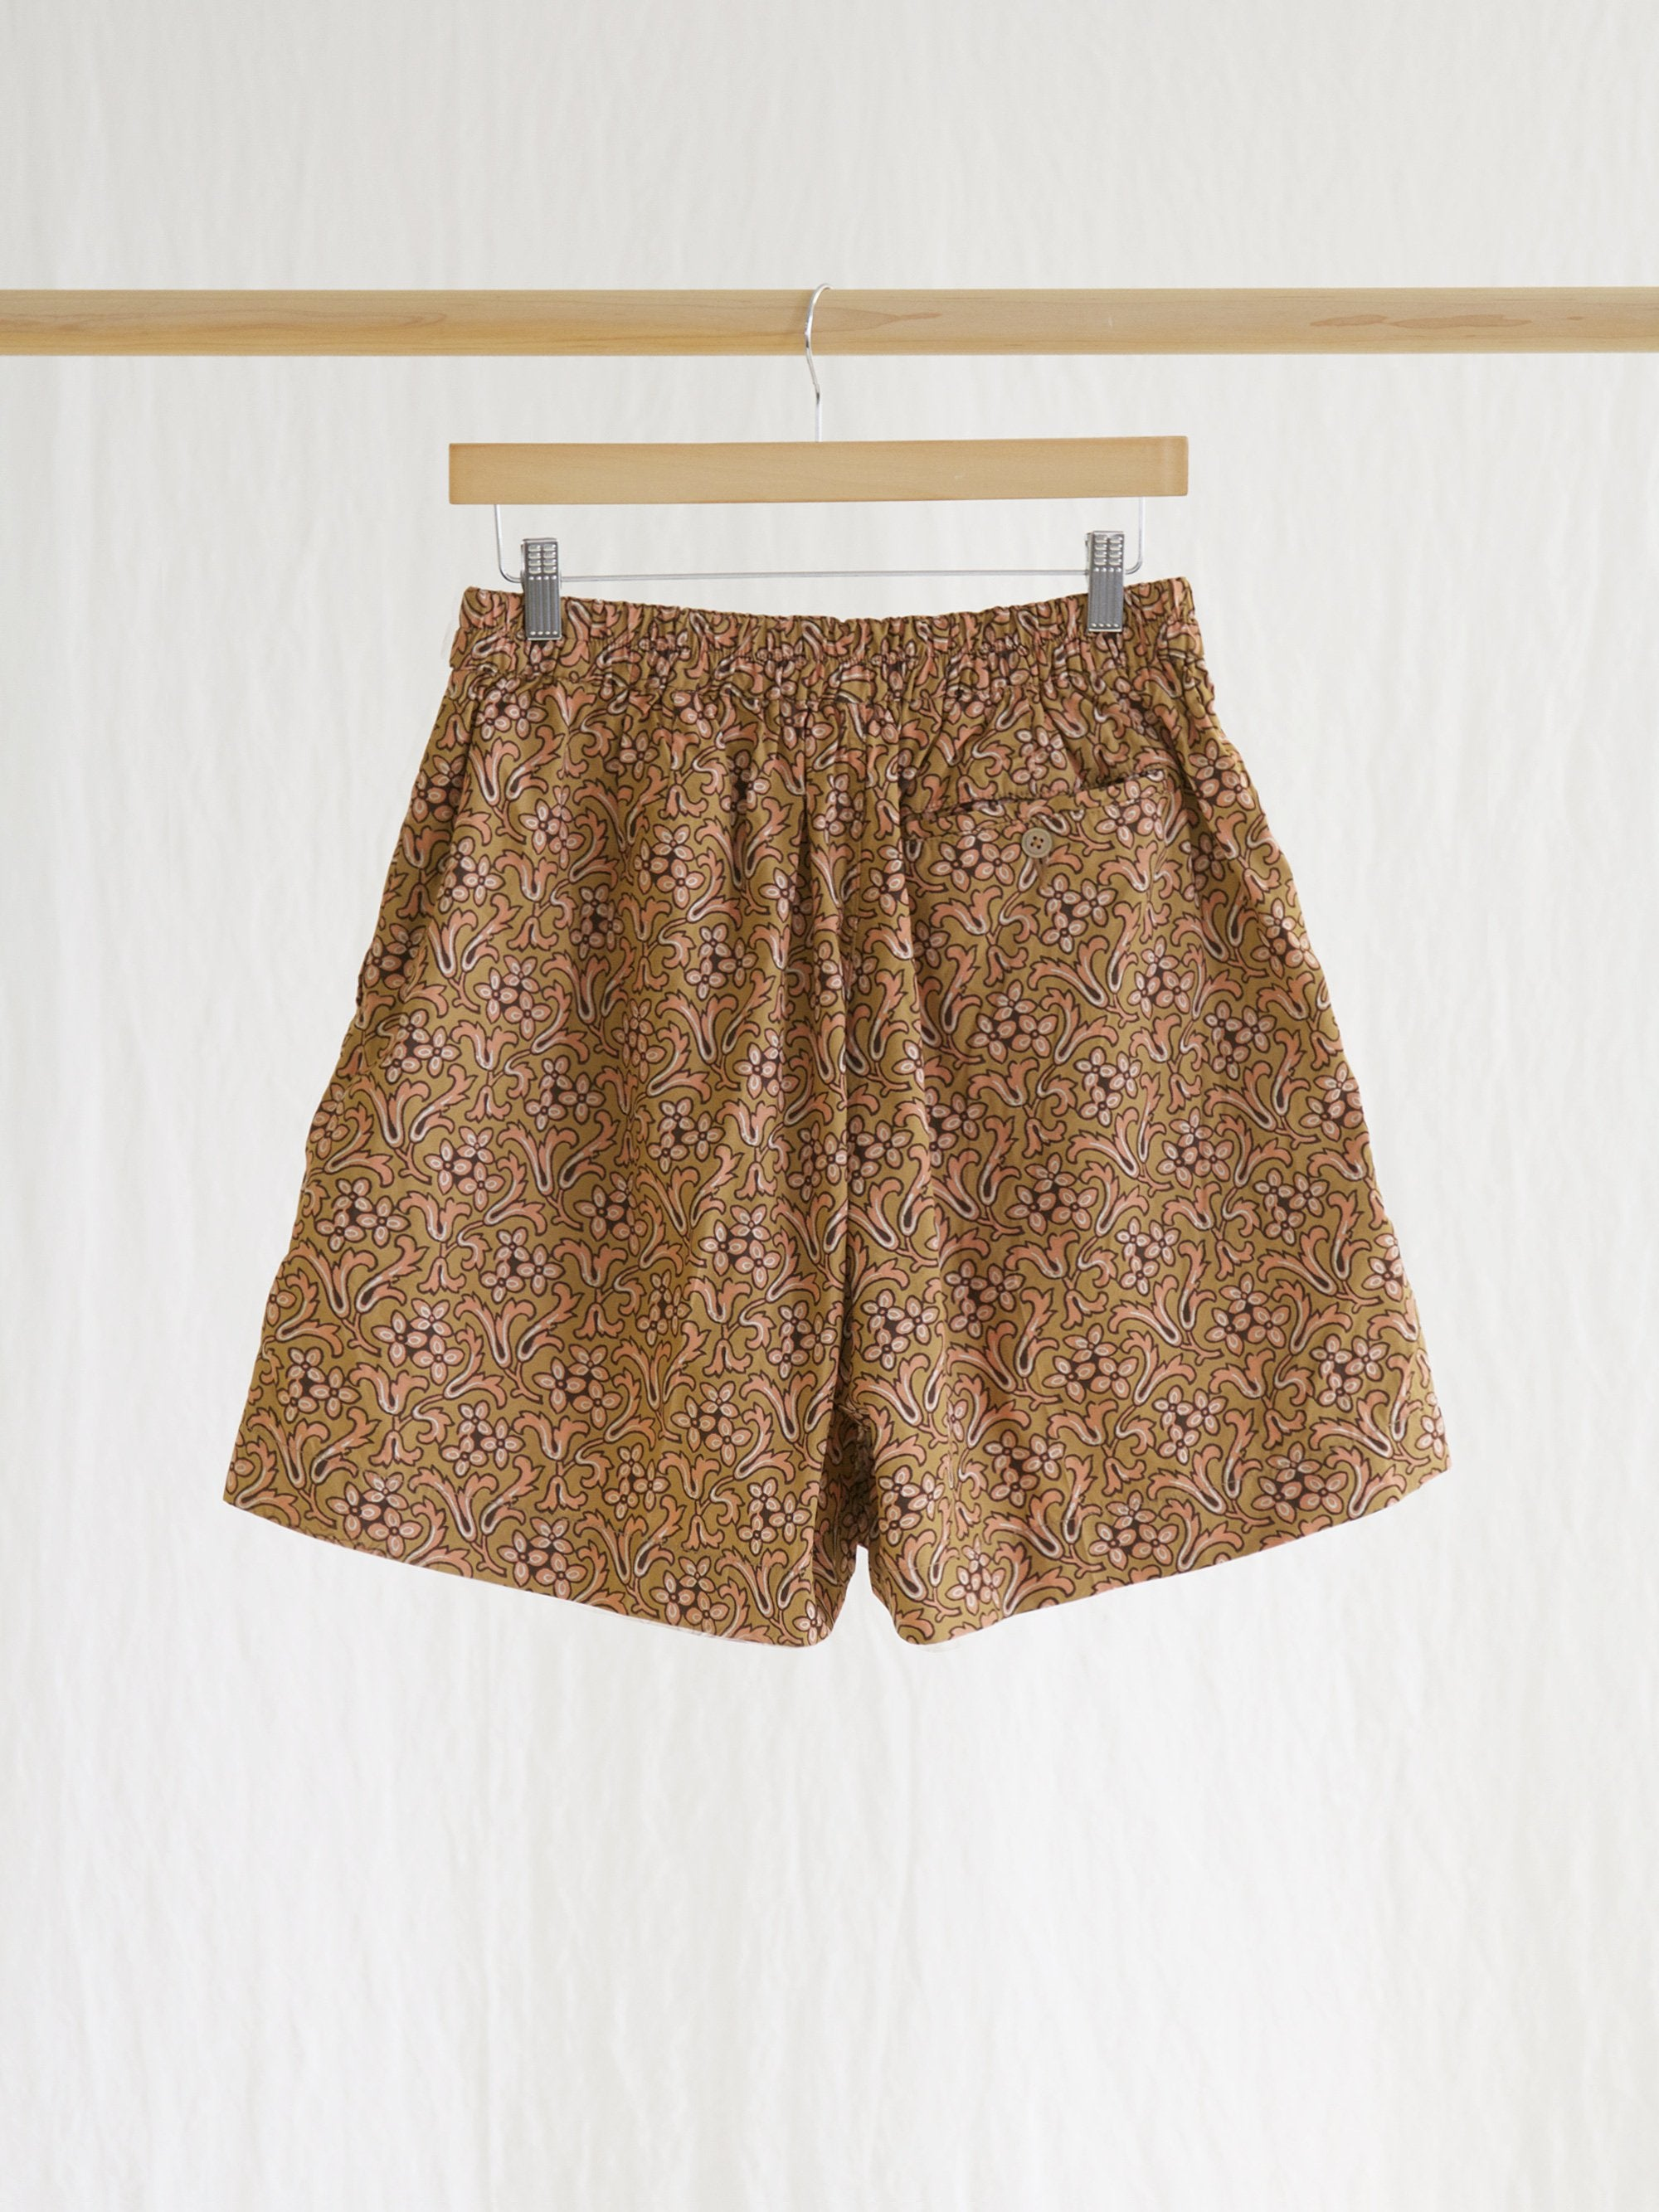 Namu Shop - Kaptain Sunshine Athletic Wide Shorts - Sand Beige Print